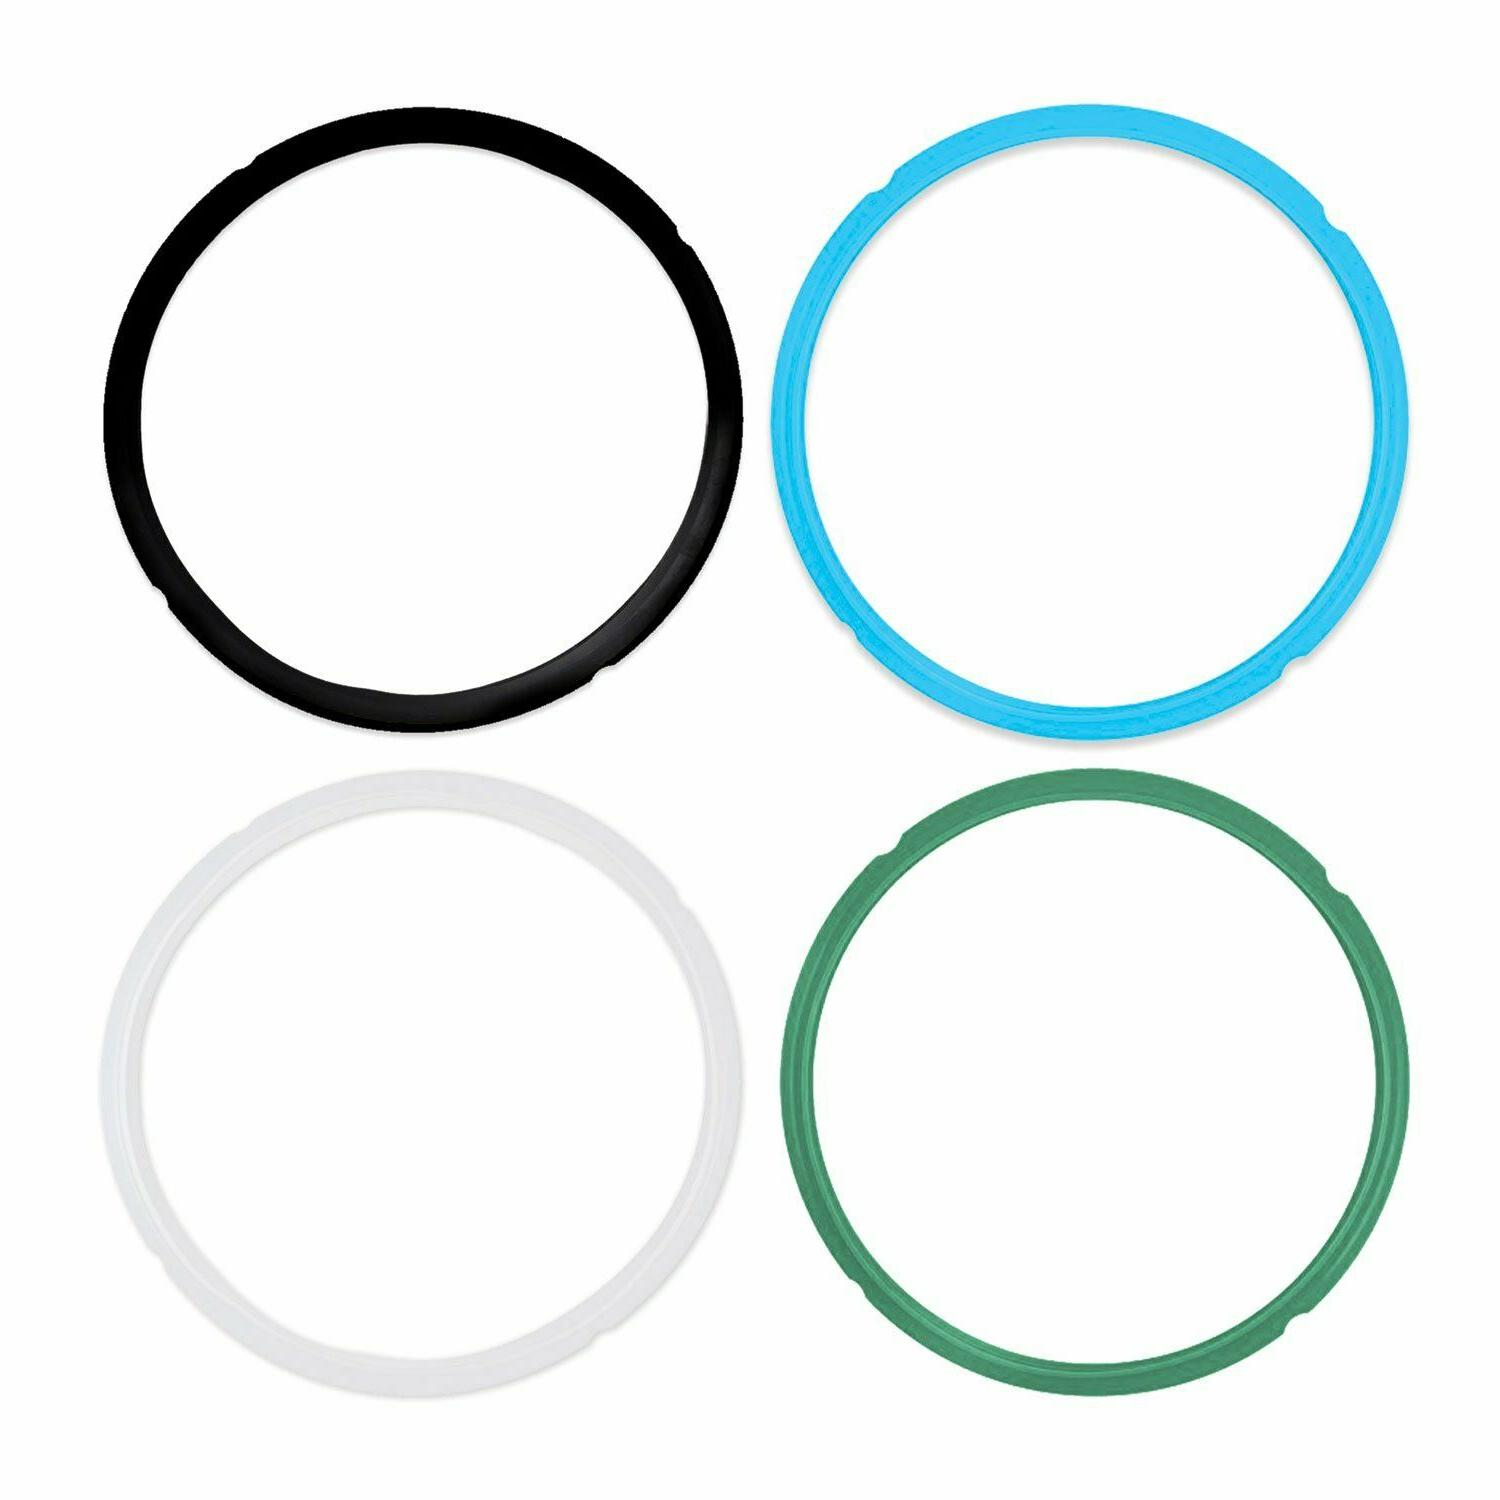 Pack of 4 Silicone Sealing Rings for Instant Pot 5 & 6 Quart